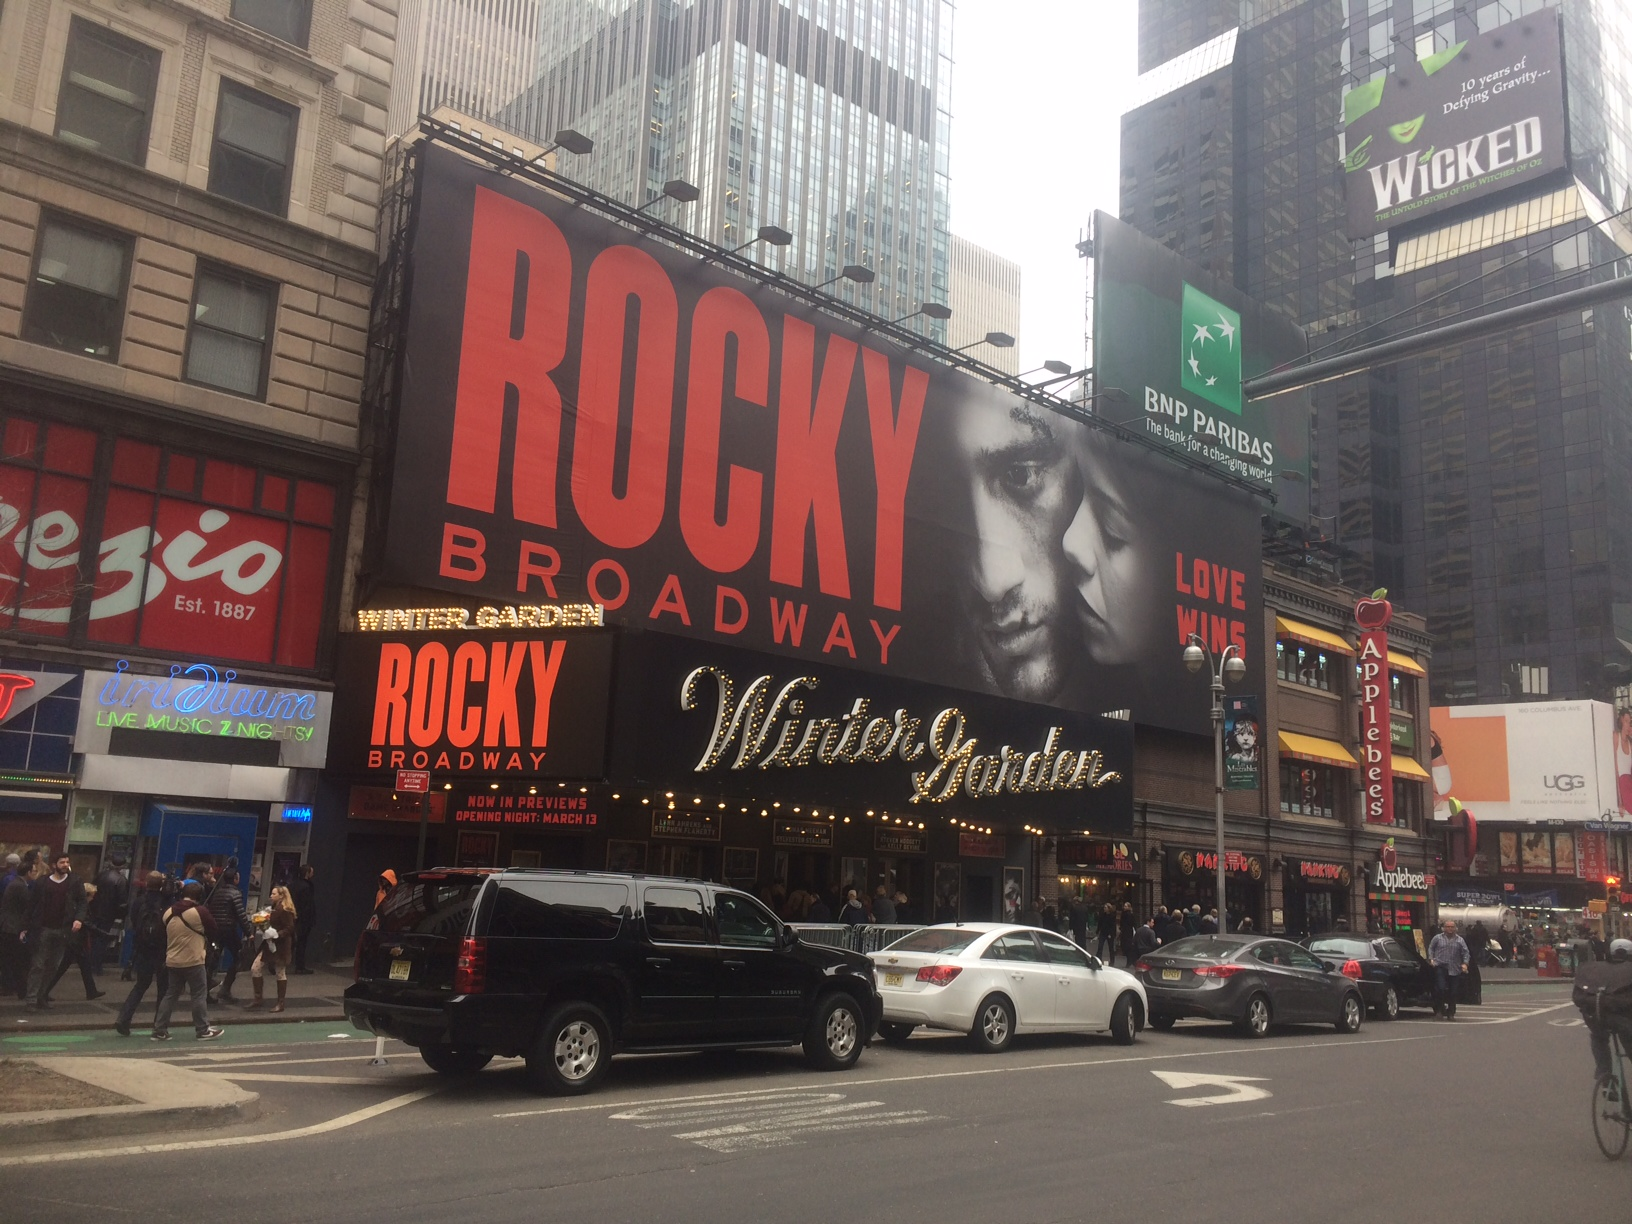 rocky-broadway-review-rocky-broadway-musical